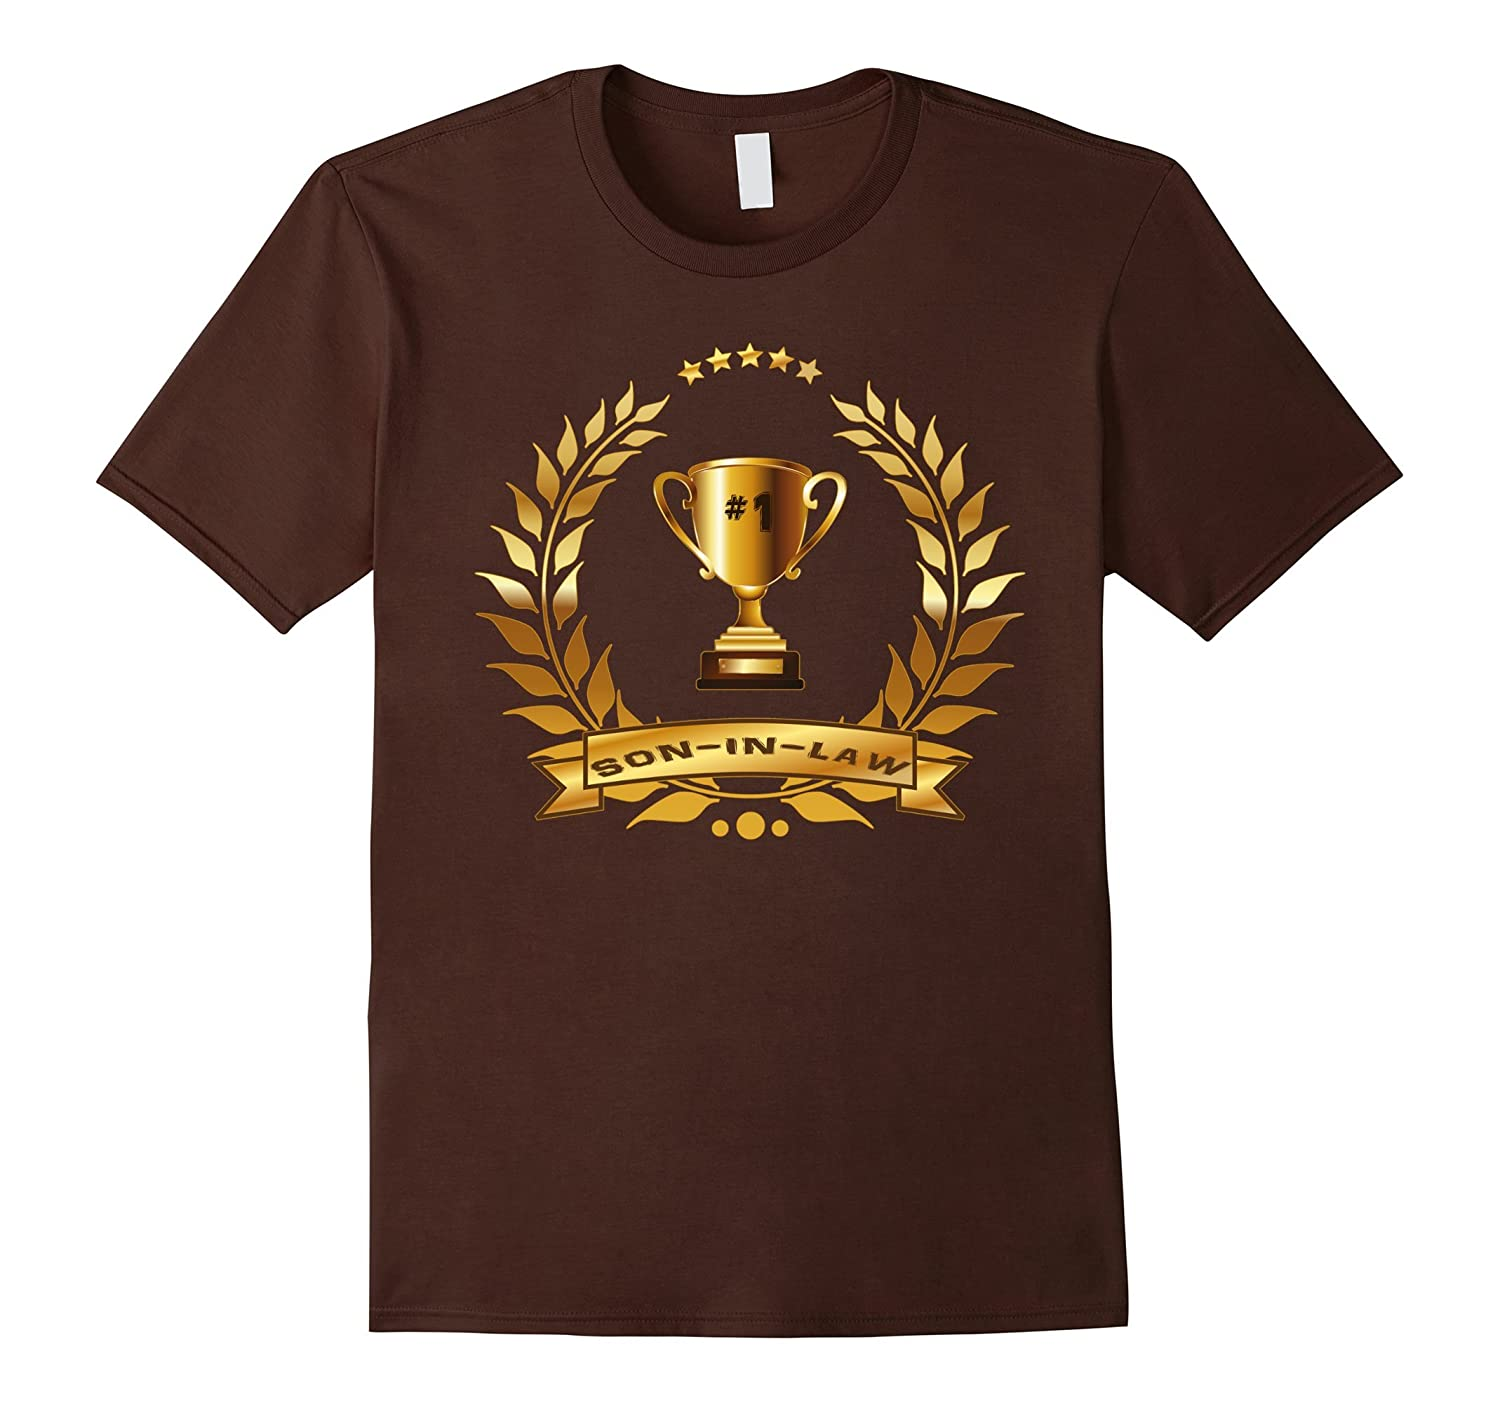 #1 Son-In-Law Shirt With Trophy-Gift For Best Son-In-Law